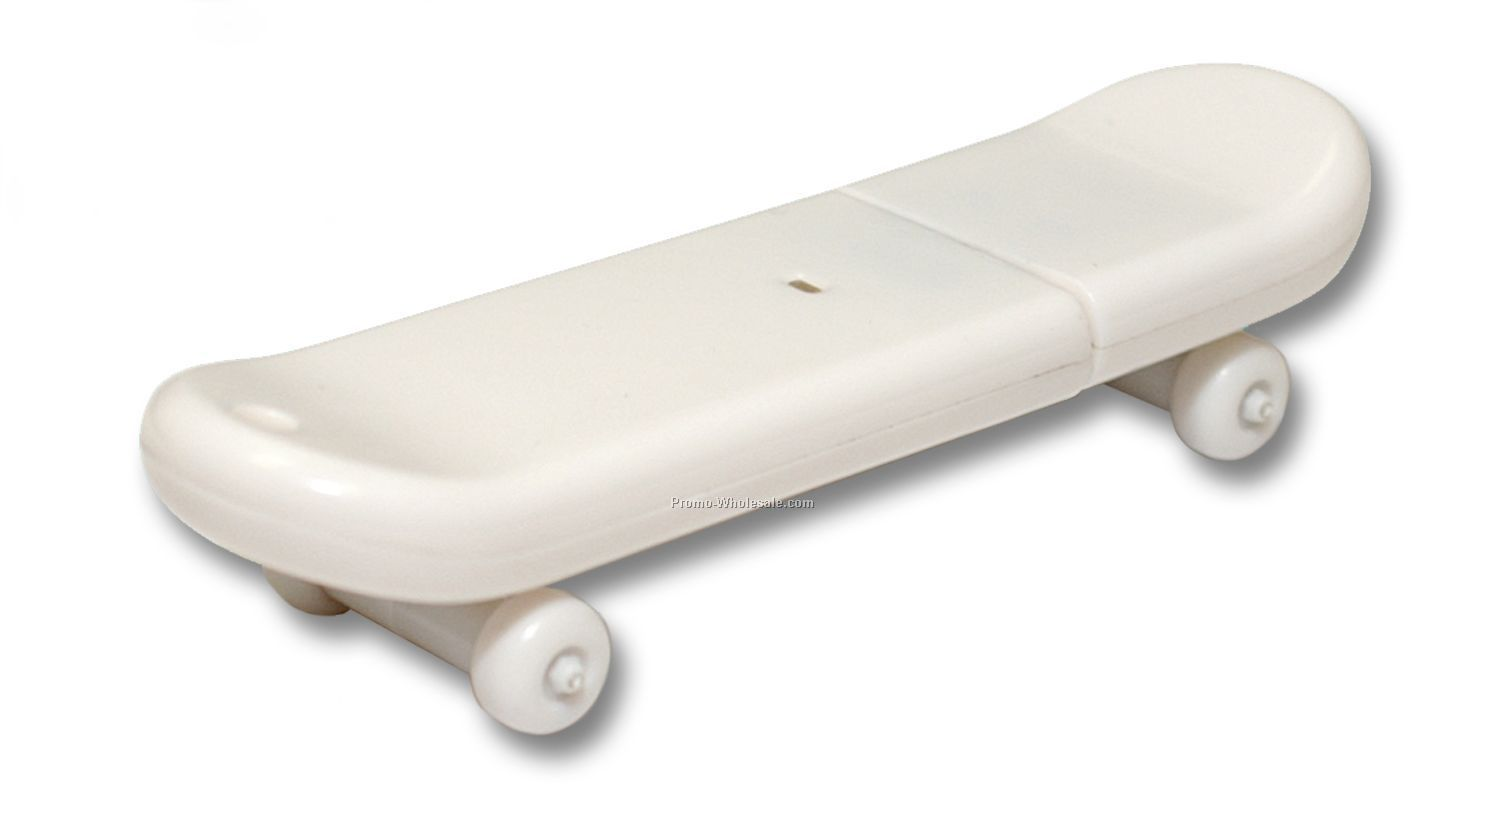 1gb USB 2.0 Skateboard Flash Drive - Rubber Coated White